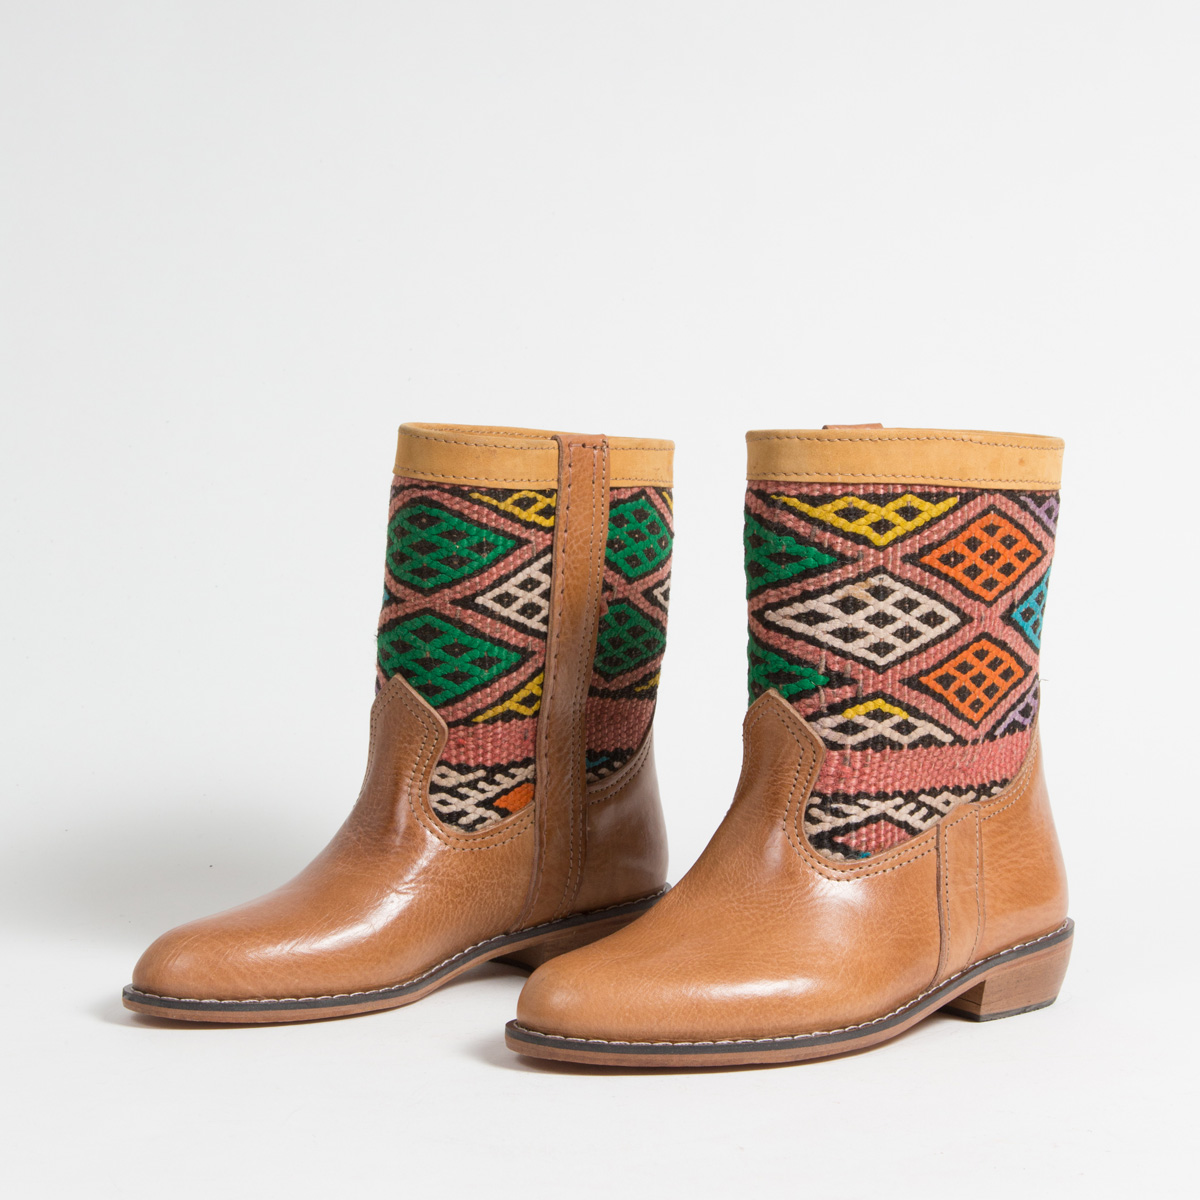 Bottines Kilim cuir mababouche artisanales (Réf. LOC1-36)